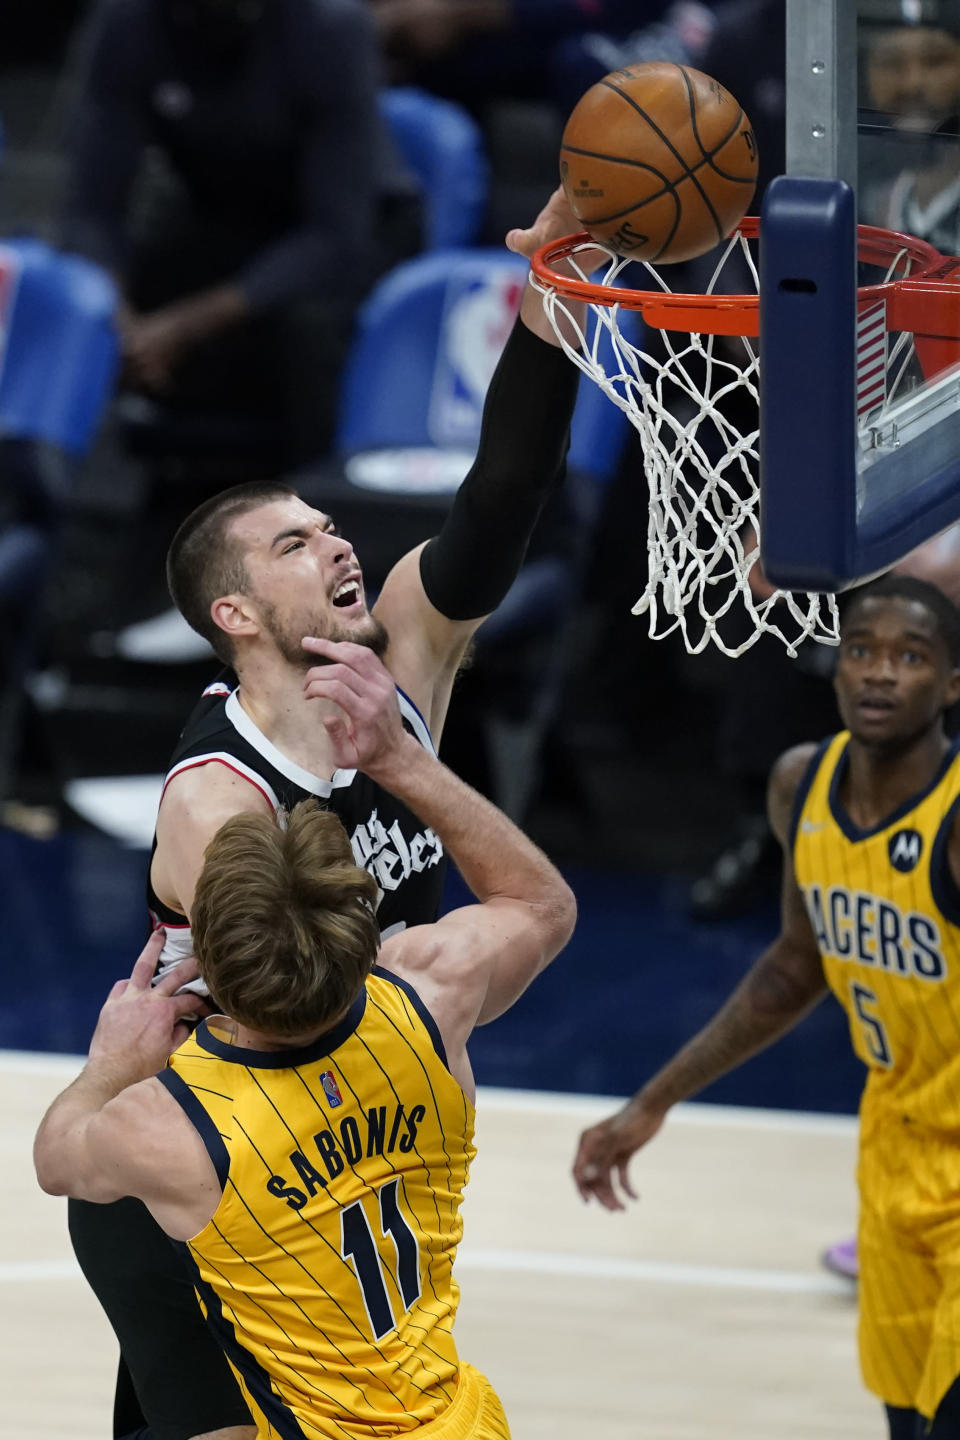 Los Angeles Clippers' Ivica Zubac (40) dunks over Indiana Pacers' Domantas Sabonis (11) during the first half of an NBA basketball game, Tuesday, April 13, 2021, in Indianapolis. (AP Photo/Darron Cummings)